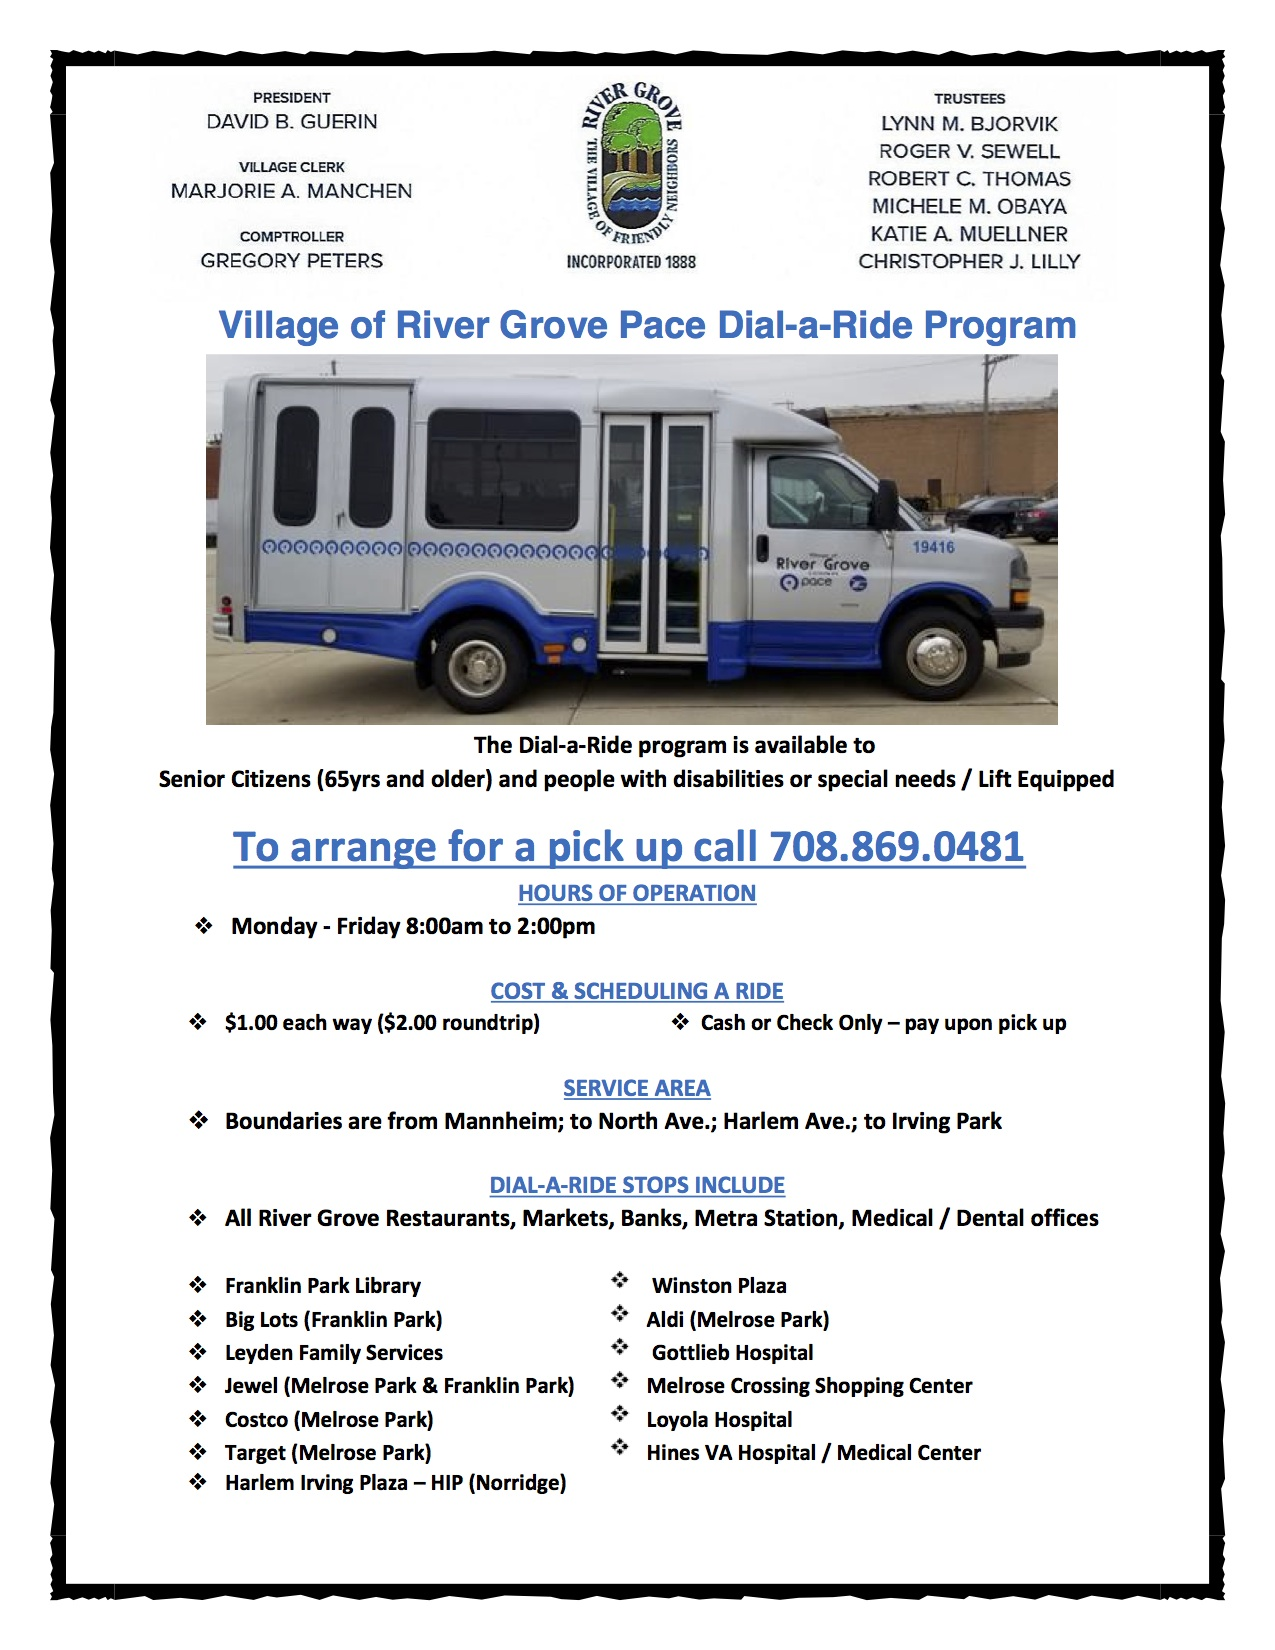 Updated flyer with information about the Dial A Ride program